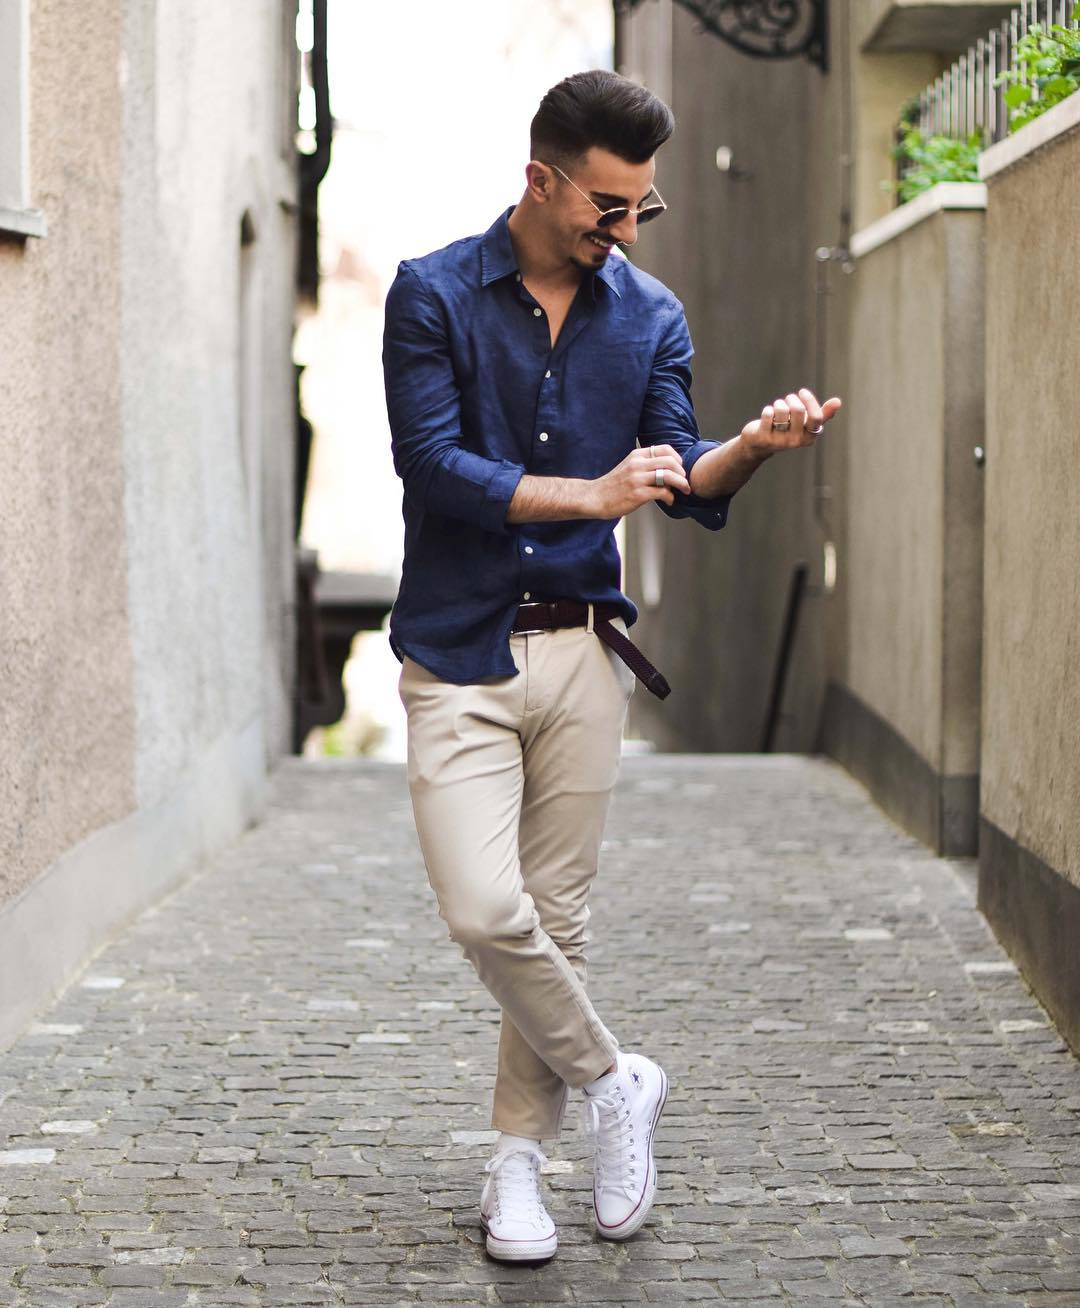 5 Drool-Worthy Summer Outfits For Guys #summer #outfits #mensfashion #streetstyle